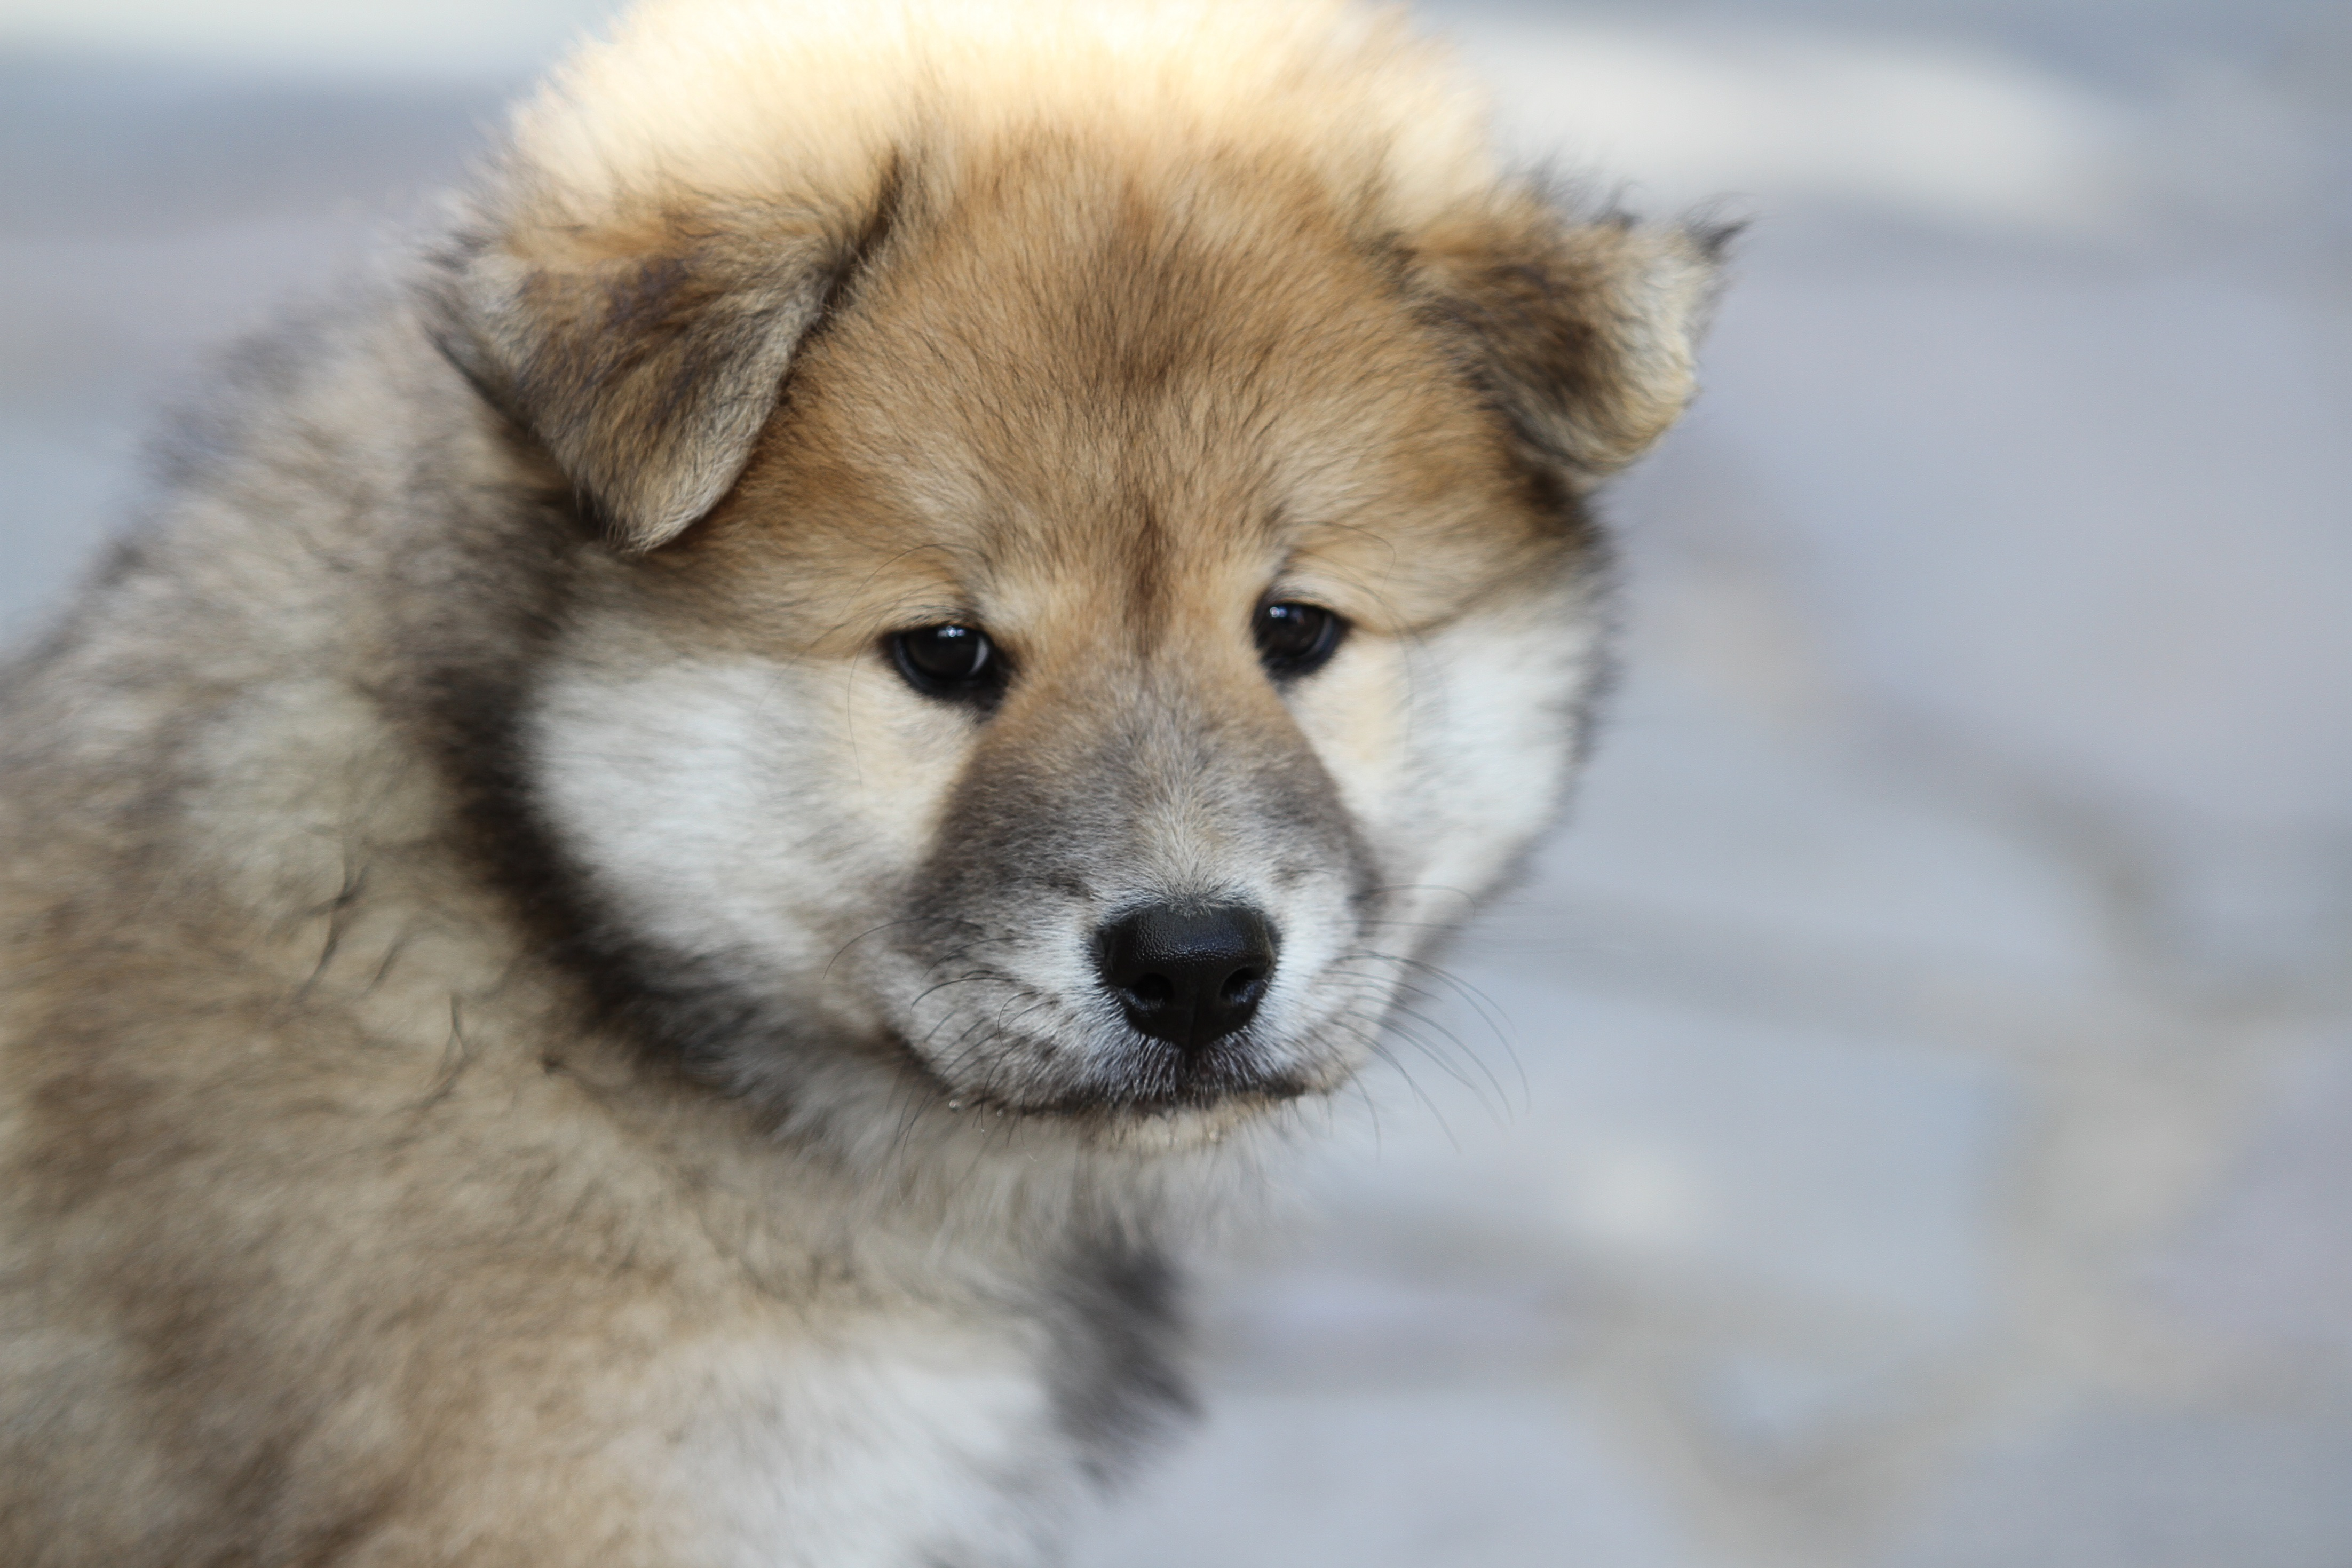 129877 download wallpaper Animals, Oirazir, Oyrazir, Eurasier, Eurasian, Puppy, Dog screensavers and pictures for free